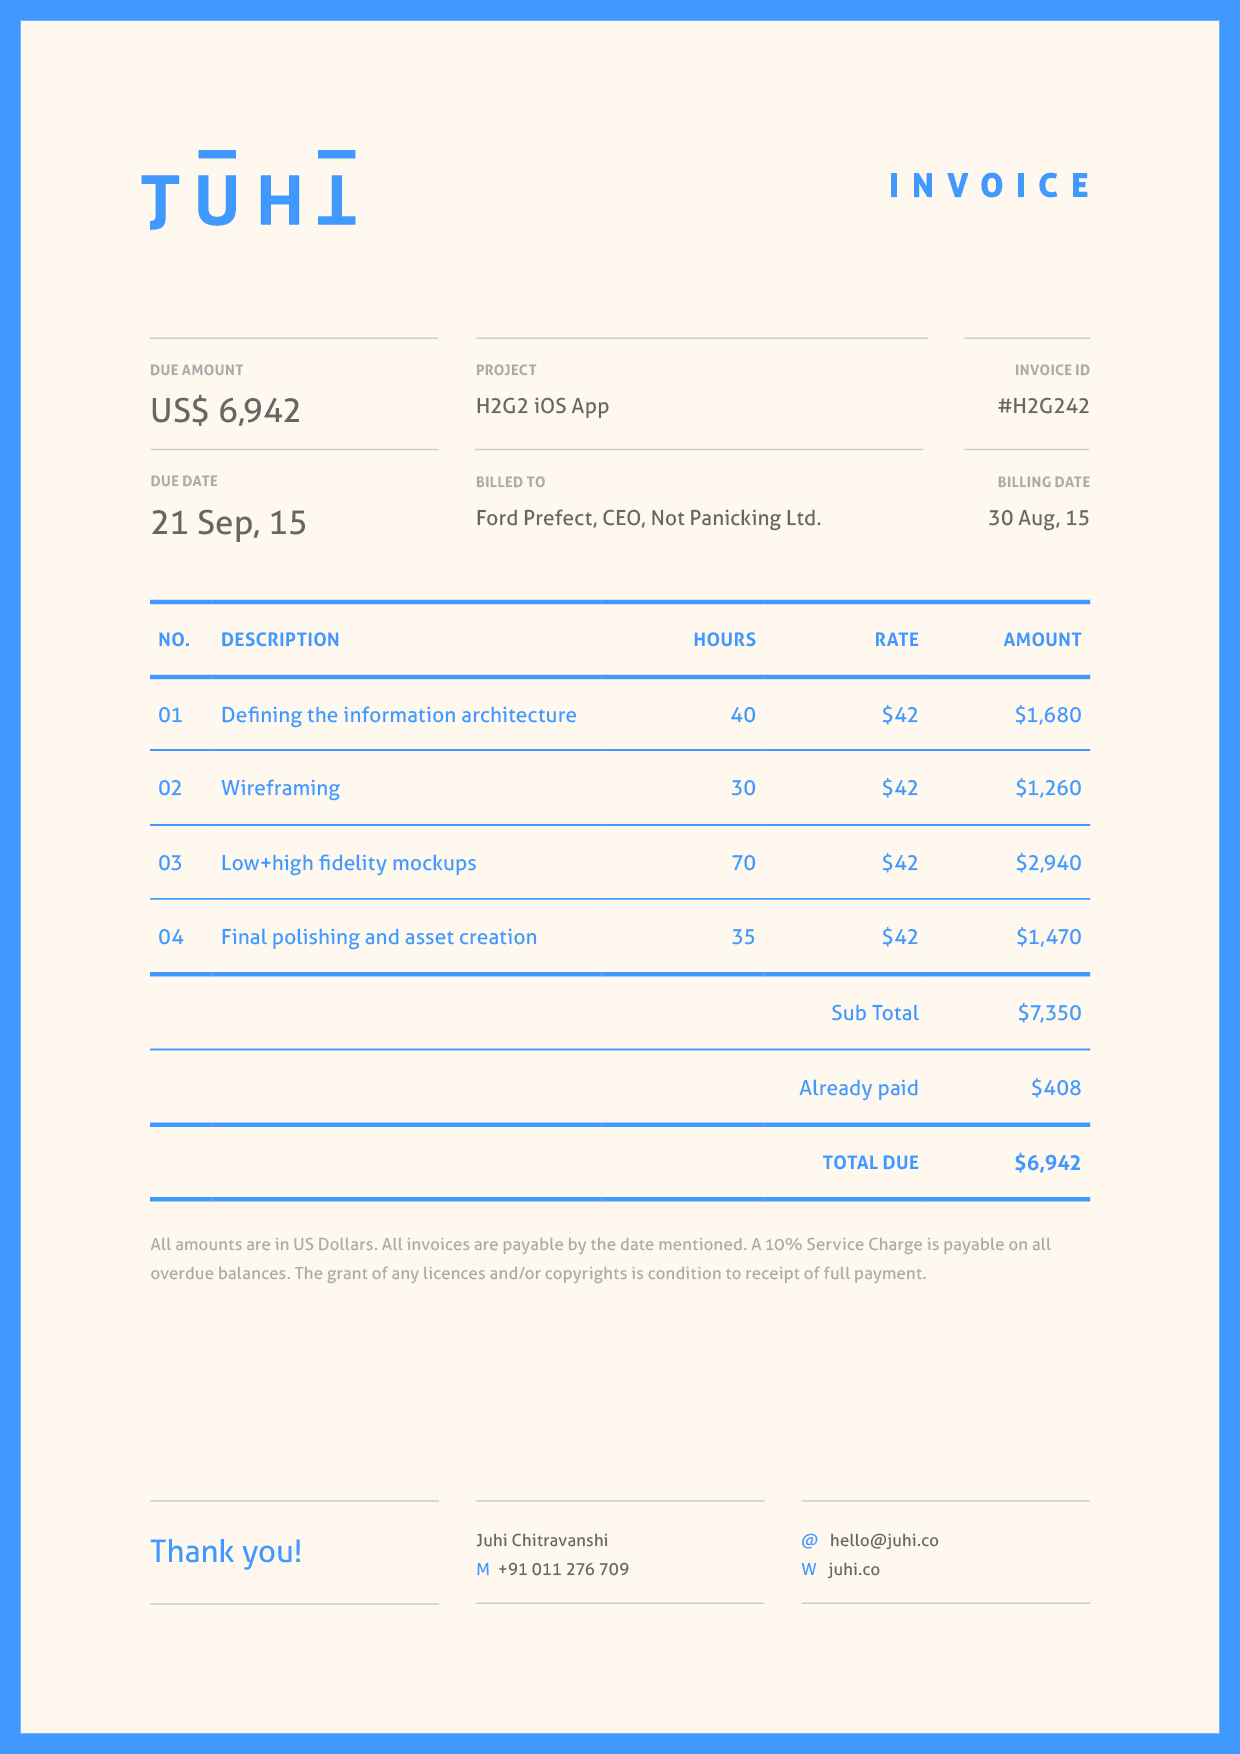 Coachoutletonlineplusus  Winsome Dont Hold Back On Your Invoice  Inspiring Designs  With Likable Invoice By Juhi Chitravanshi Follow With Awesome Labor Invoice Template Also What Is A Tax Invoice In Addition Free Auto Repair Invoice And Invoice Program For Mac As Well As Factor Invoices Additionally How To Fill Out A Invoice From Inspirationfeedcom With Coachoutletonlineplusus  Likable Dont Hold Back On Your Invoice  Inspiring Designs  With Awesome Invoice By Juhi Chitravanshi Follow And Winsome Labor Invoice Template Also What Is A Tax Invoice In Addition Free Auto Repair Invoice From Inspirationfeedcom